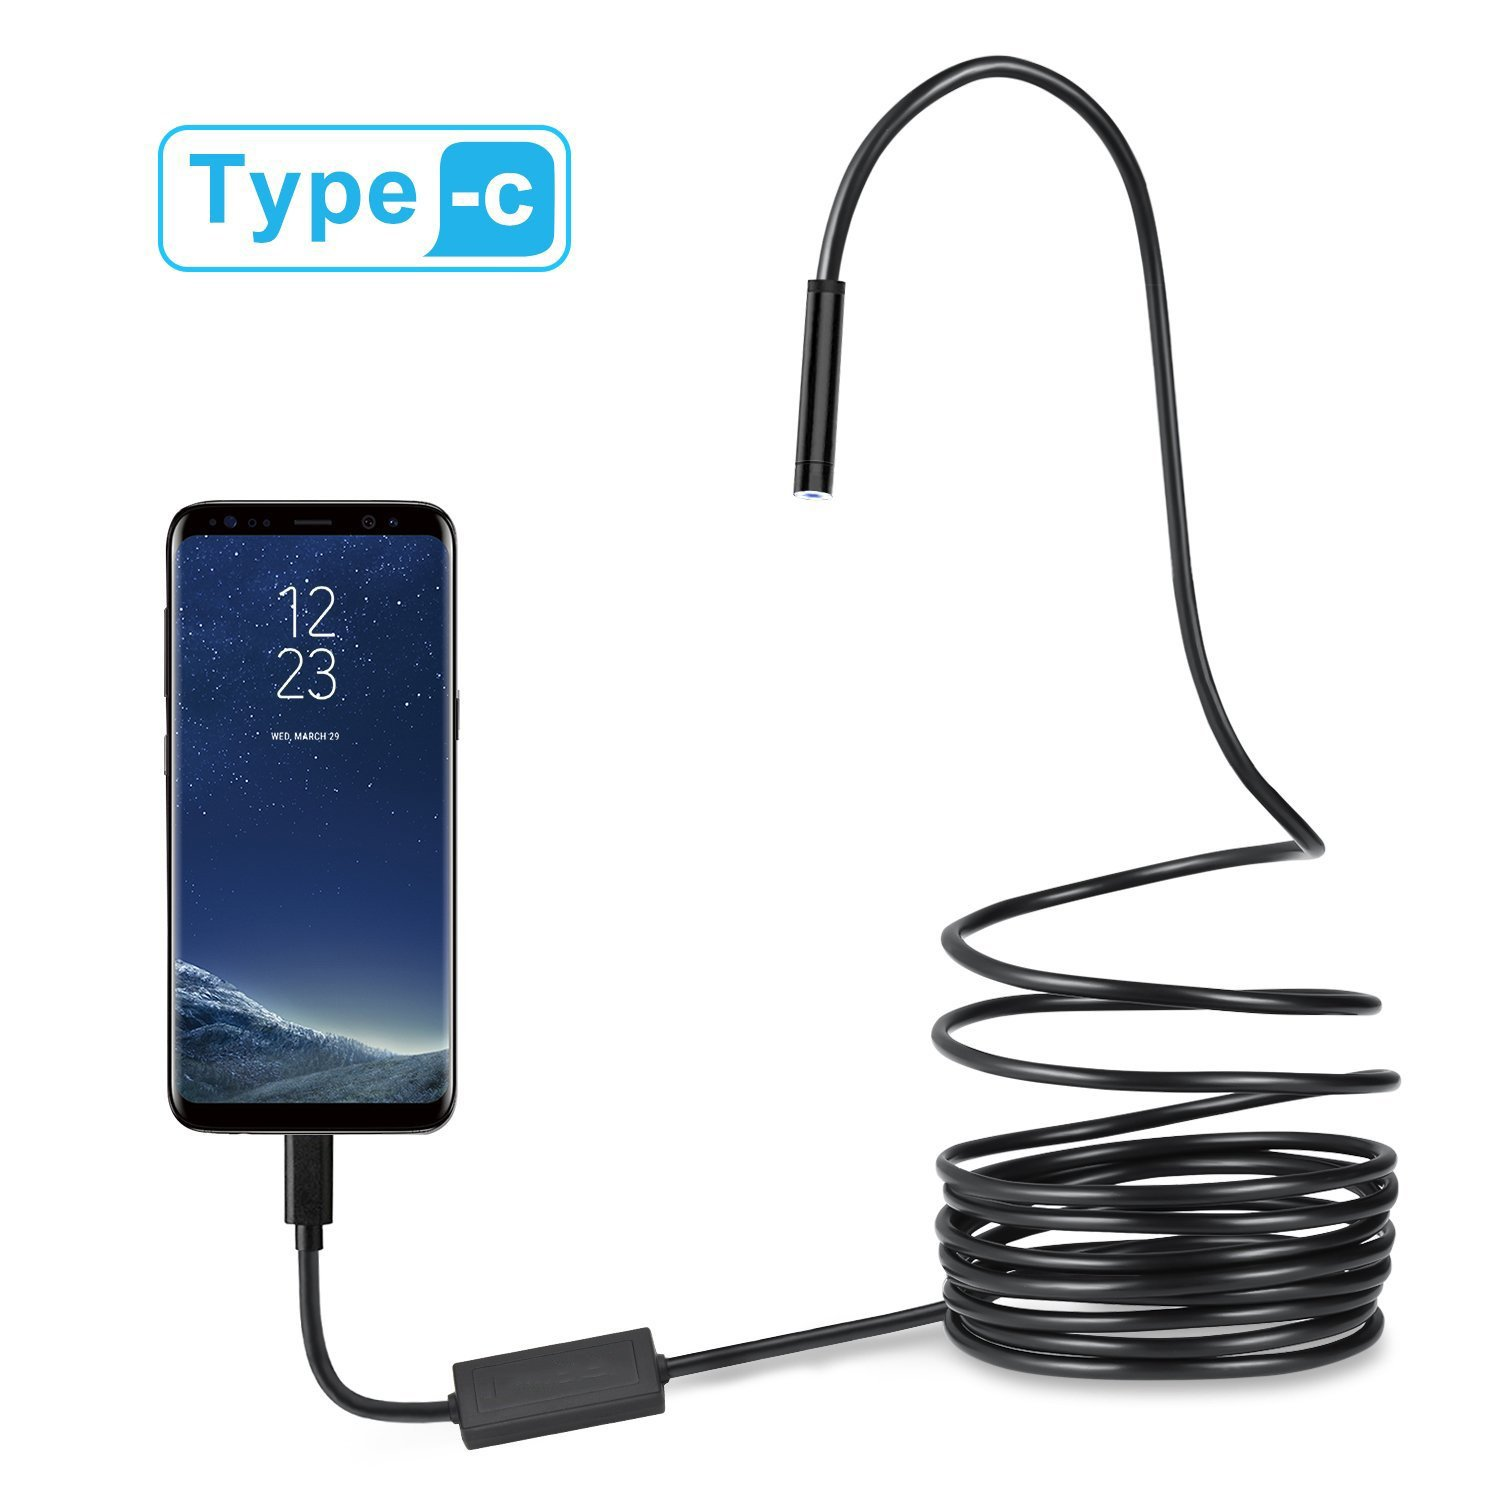 USB-C & Micro USB Endoscope, Semi-rigid USB Type-C Borescope Inspection Camera 2.0MP CMOS HD Waterproof Snake Camera with 8 Adjustable Leds for Android, Windows & Macbook Device(10m,10M) Hinmay